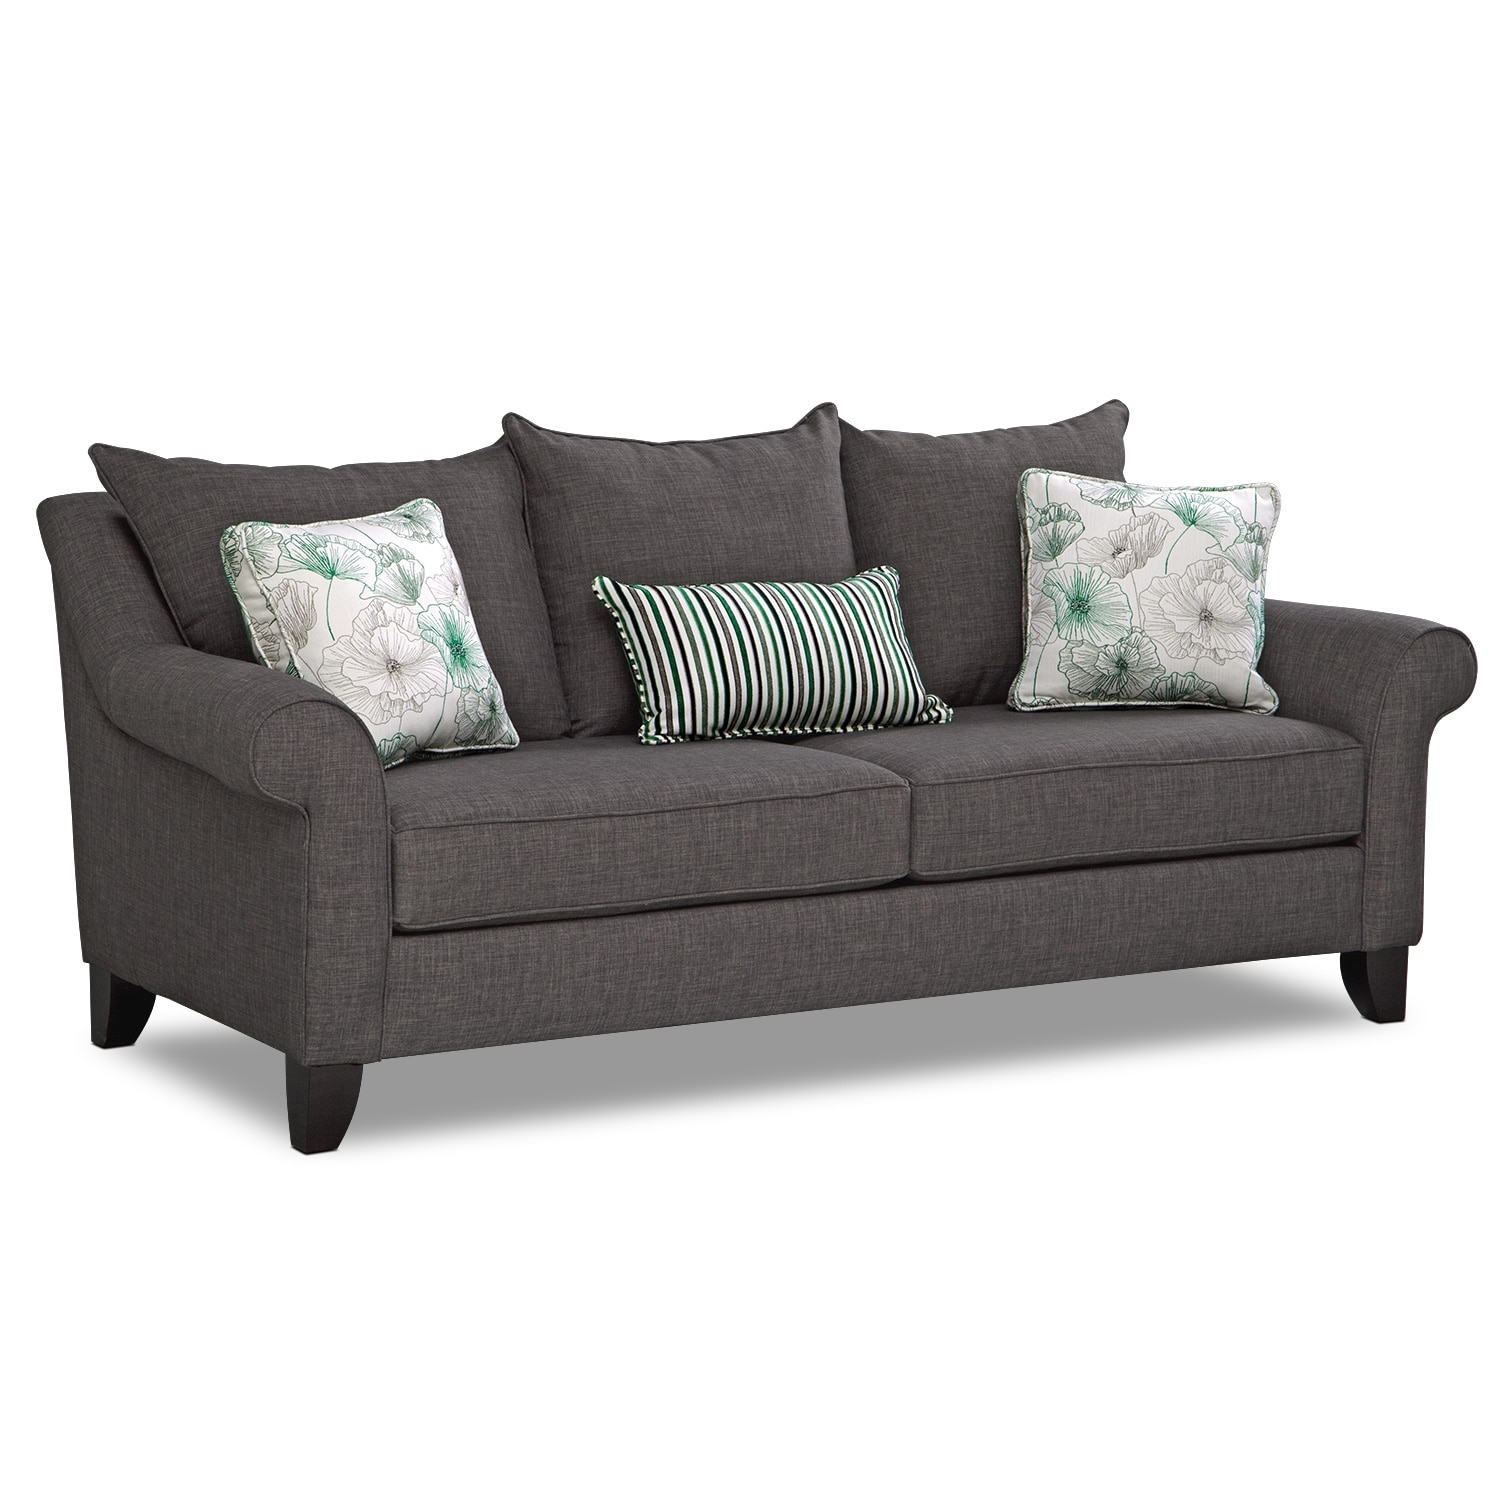 Living Room Furniture - Jasmine Sofa